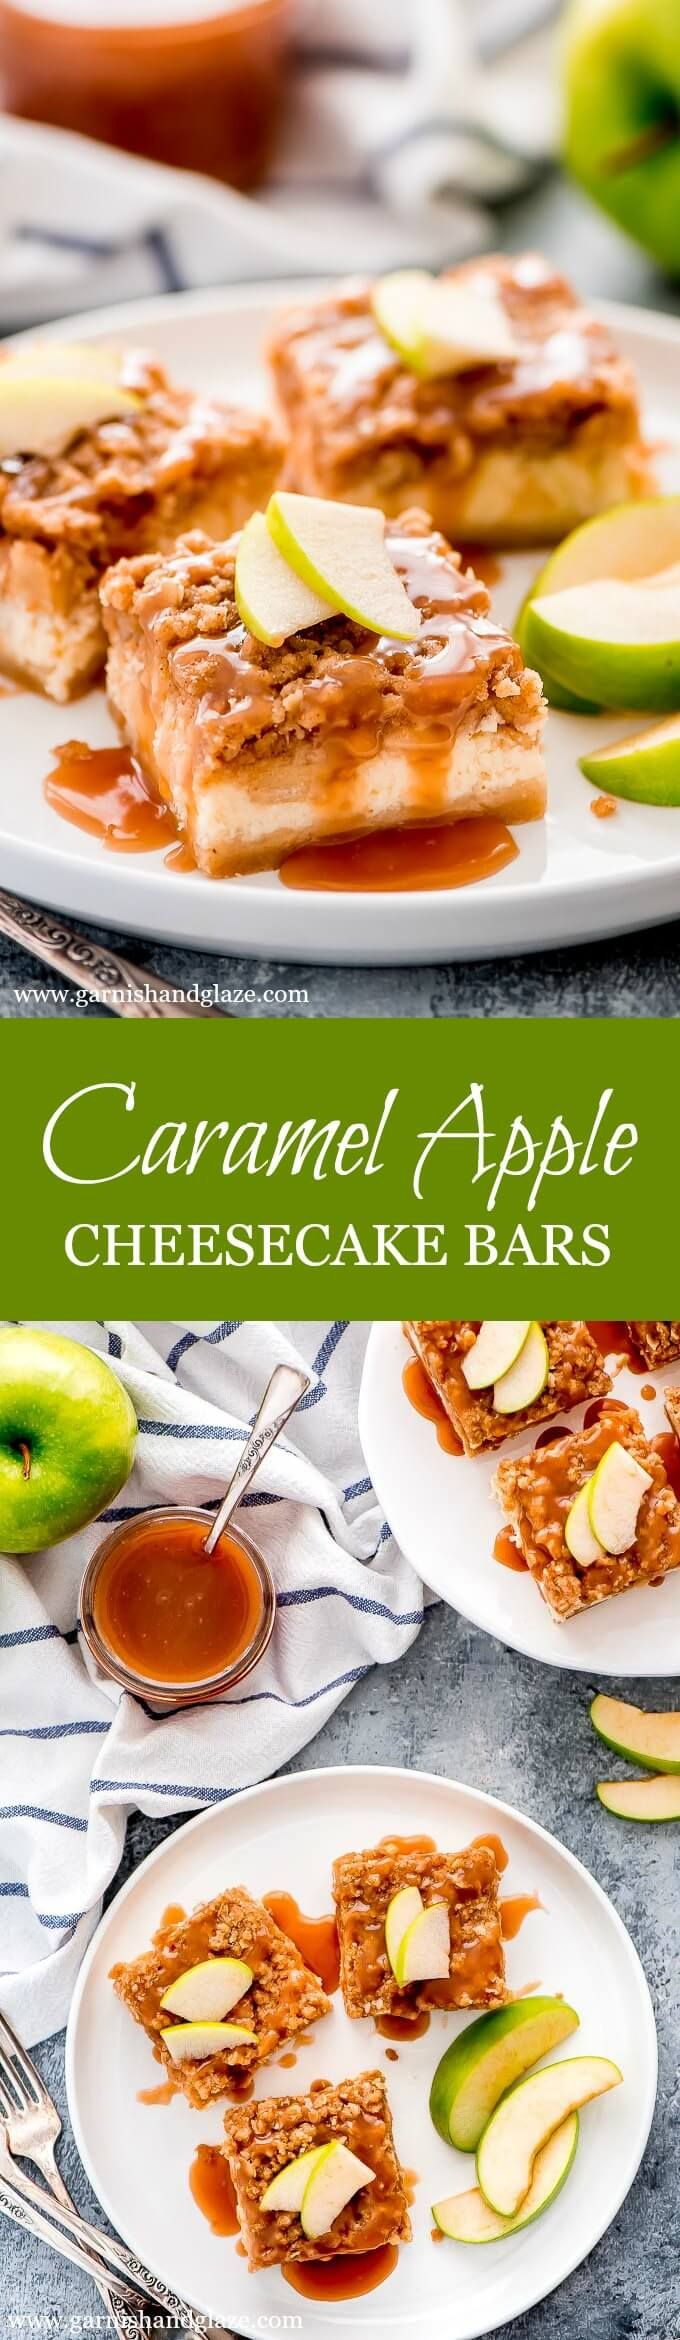 Caramel Apple Cheesecake Bars - Garnish & Glaze